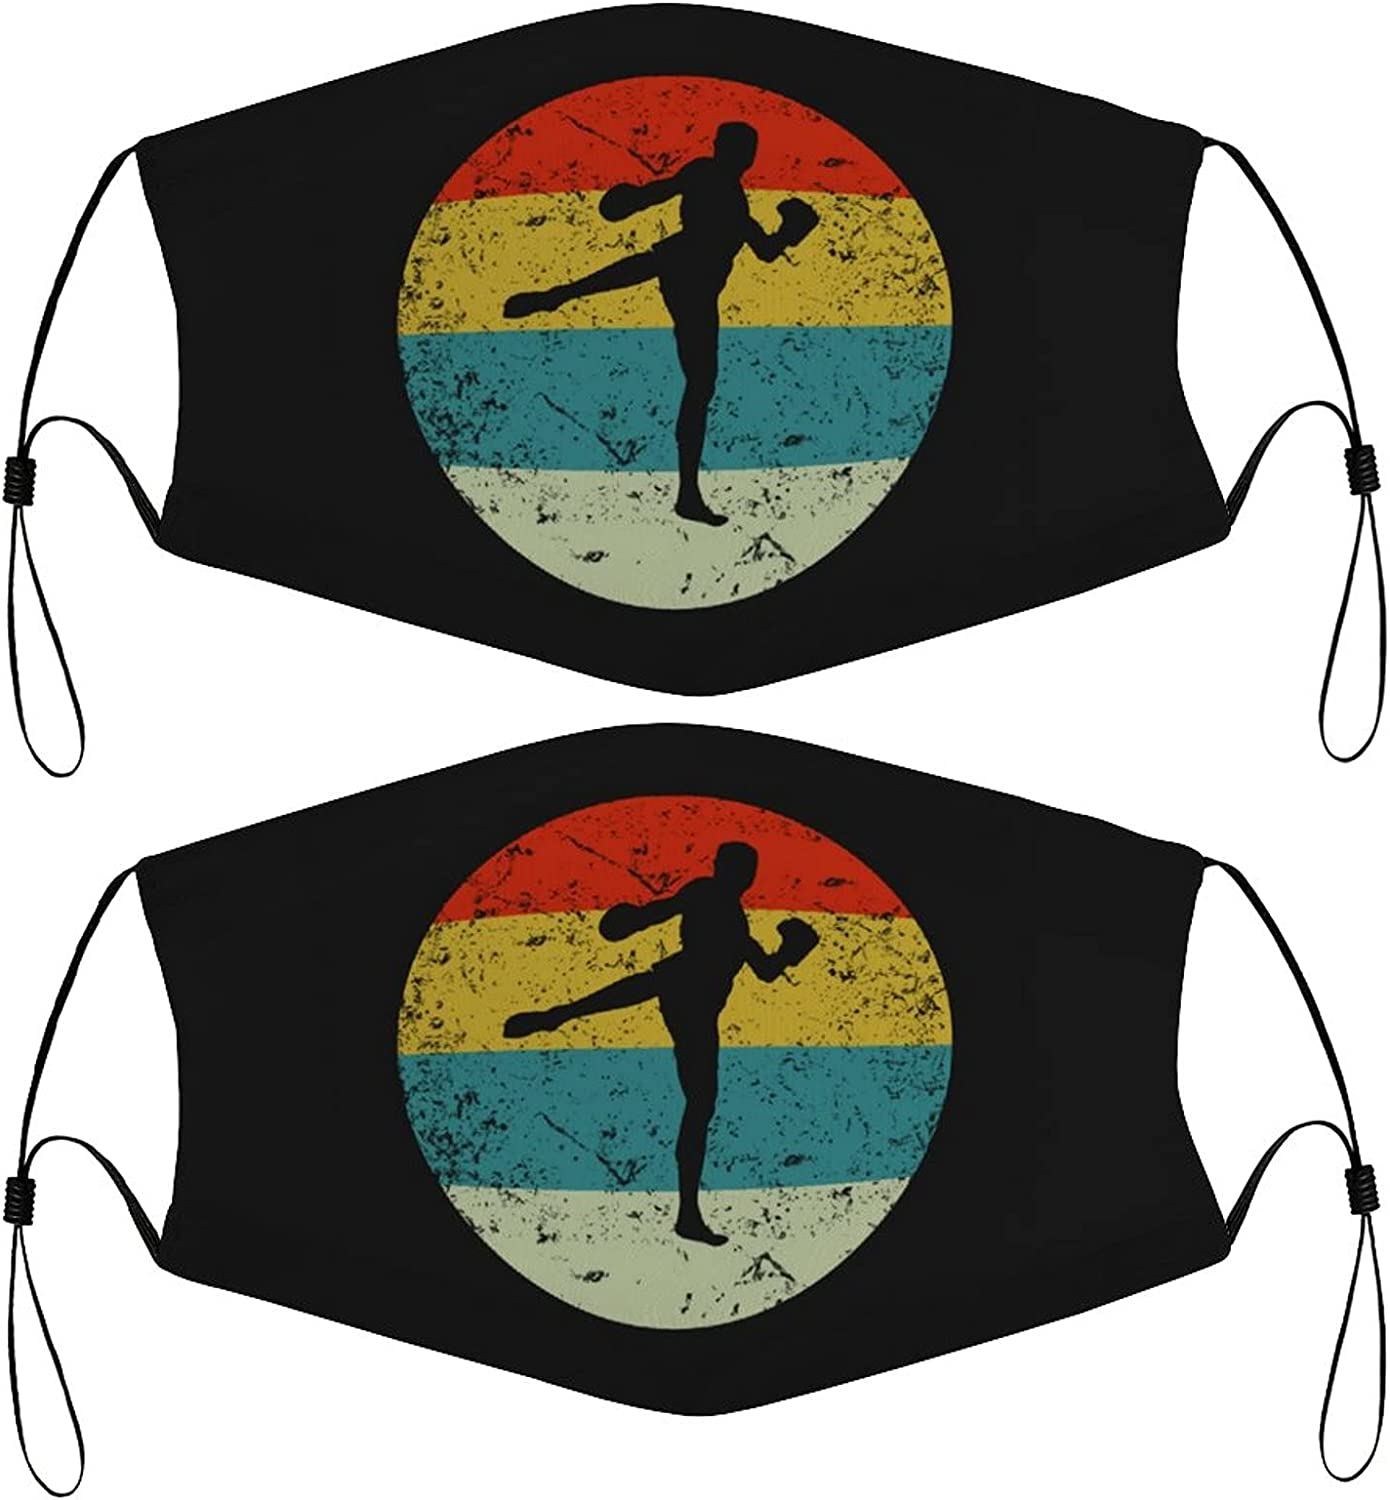 Kickboxing Retro Kids Face Masks Set of 2 with 4 Filters Washable Reusable Breathable Black Cloth Bandanas Scarf for Unisex Boys Girls